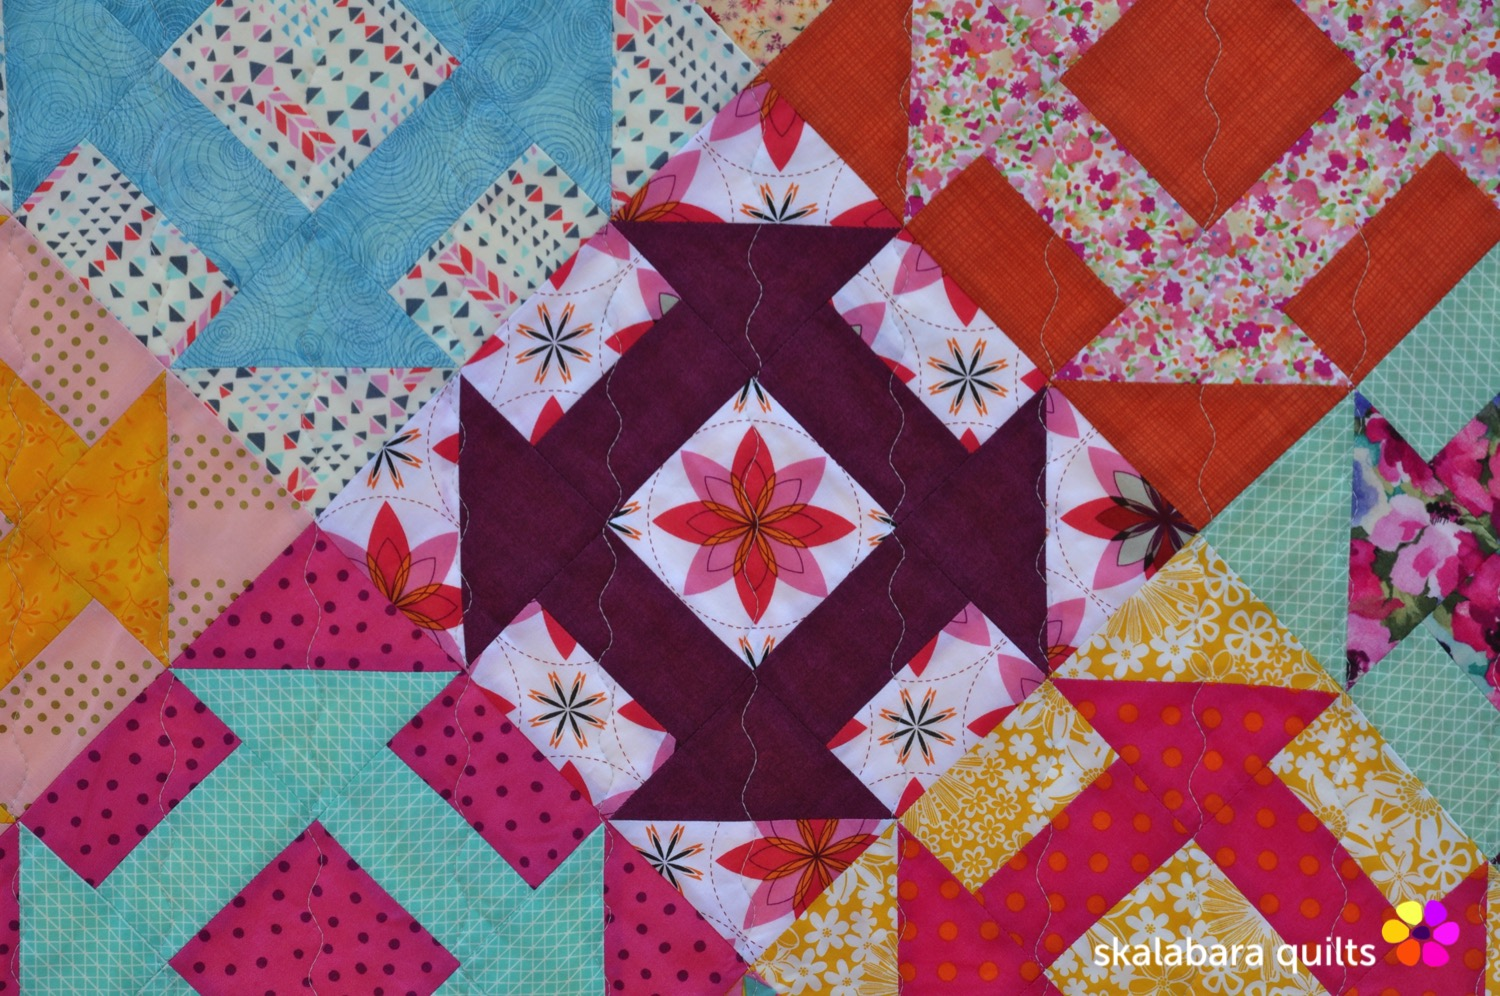 churn dash quilt detail 1 - skalabara quilts